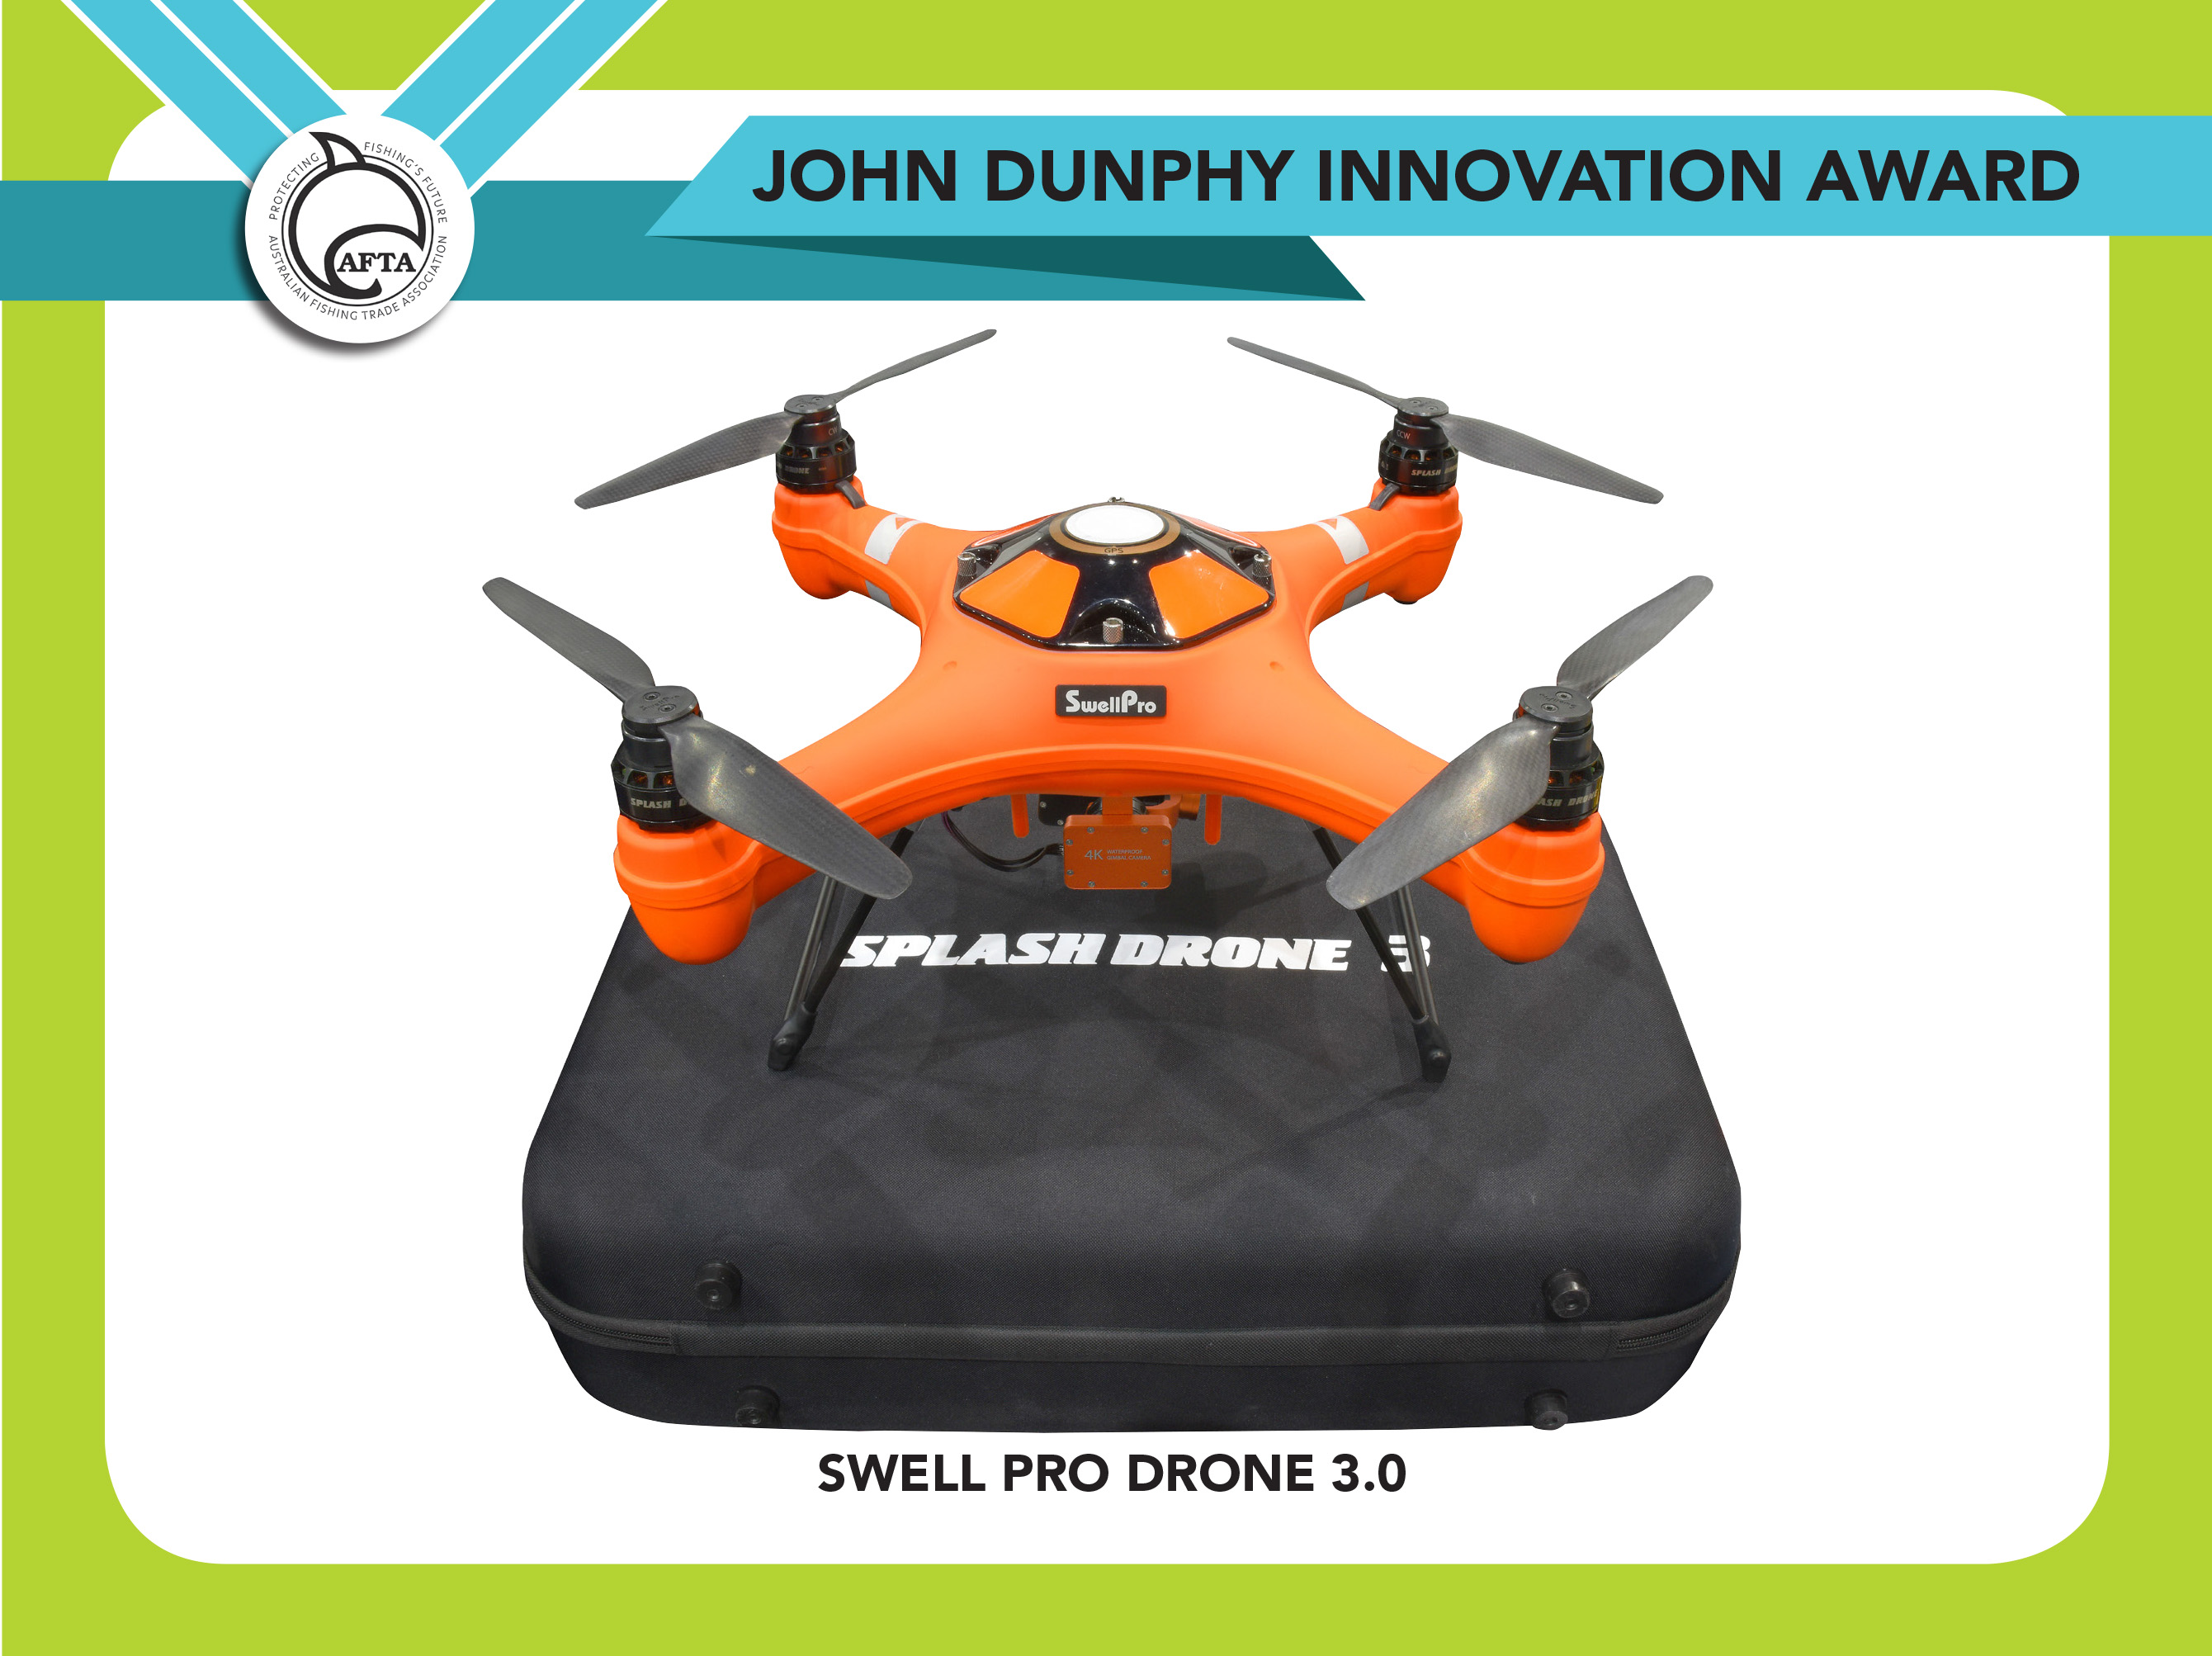 JohnDunphyInnovationAward